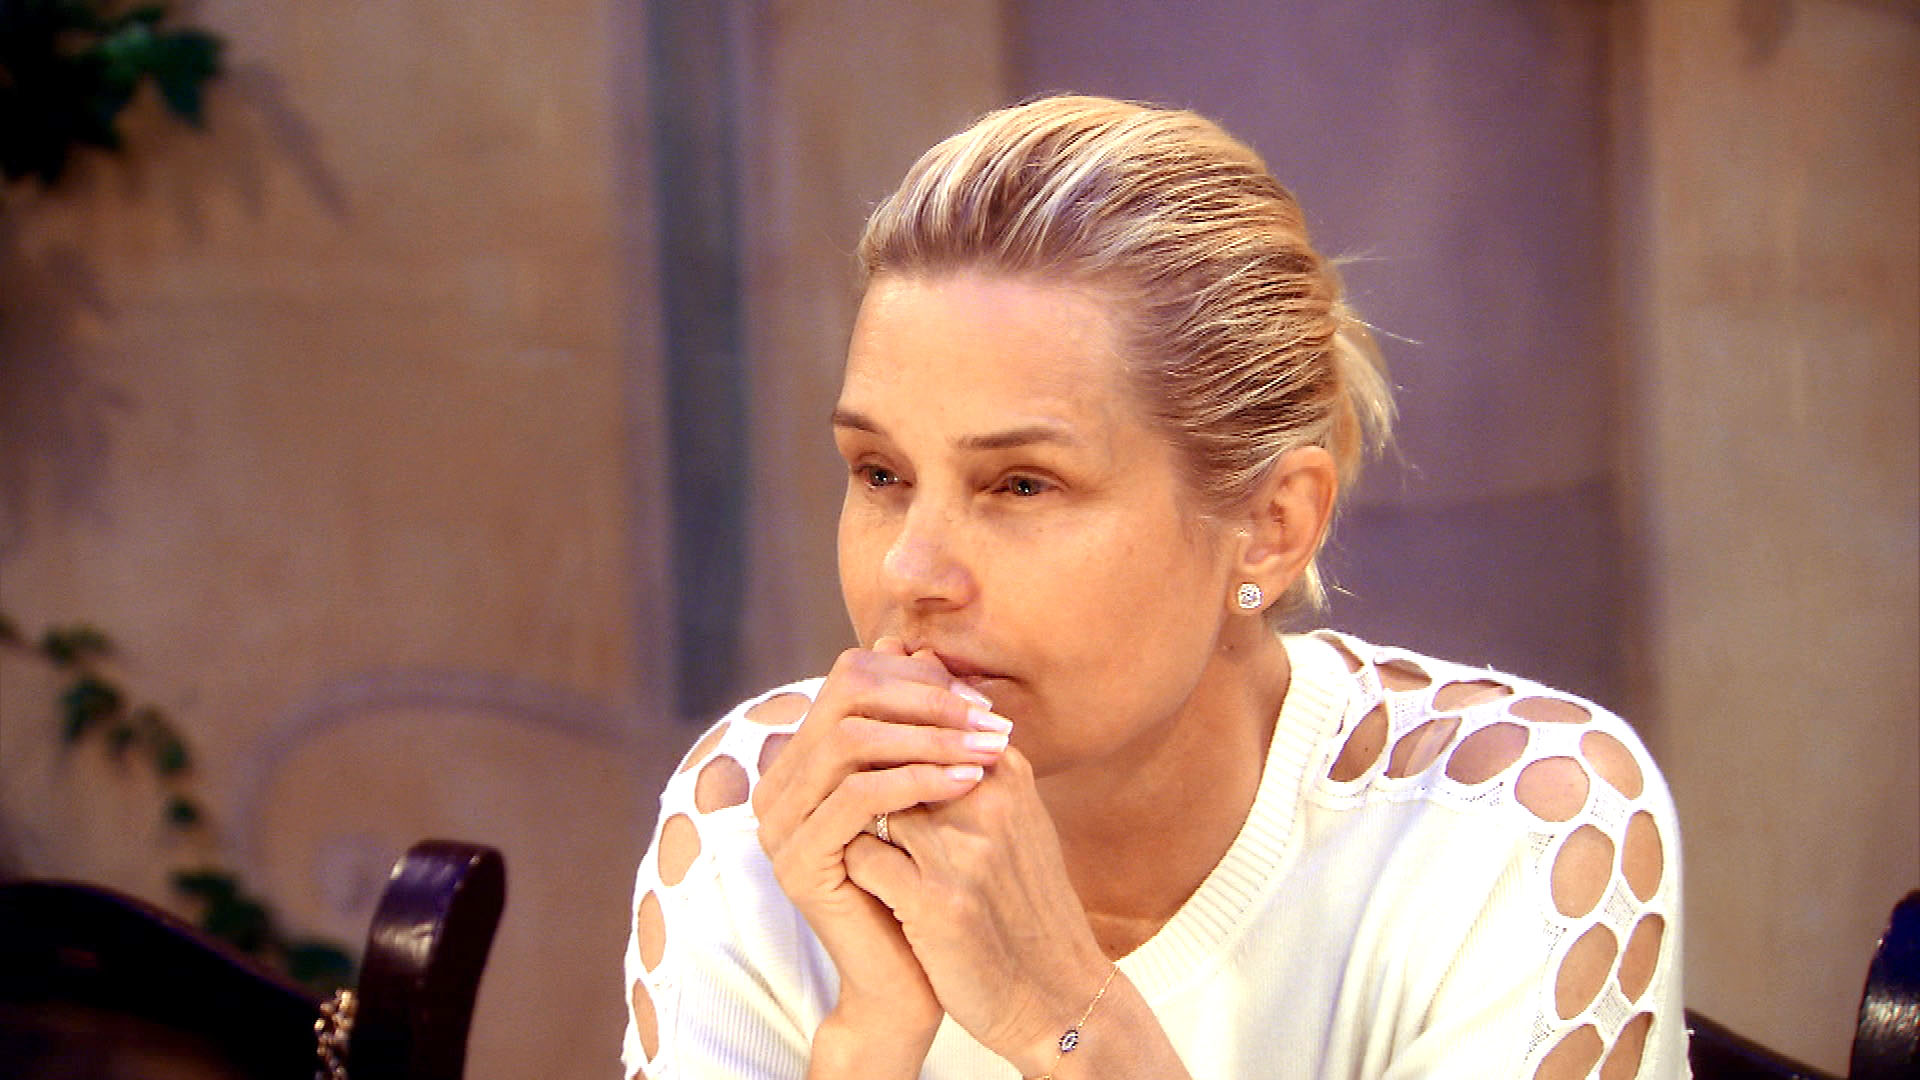 Yolanda Foster Goes Out Makeup-Free